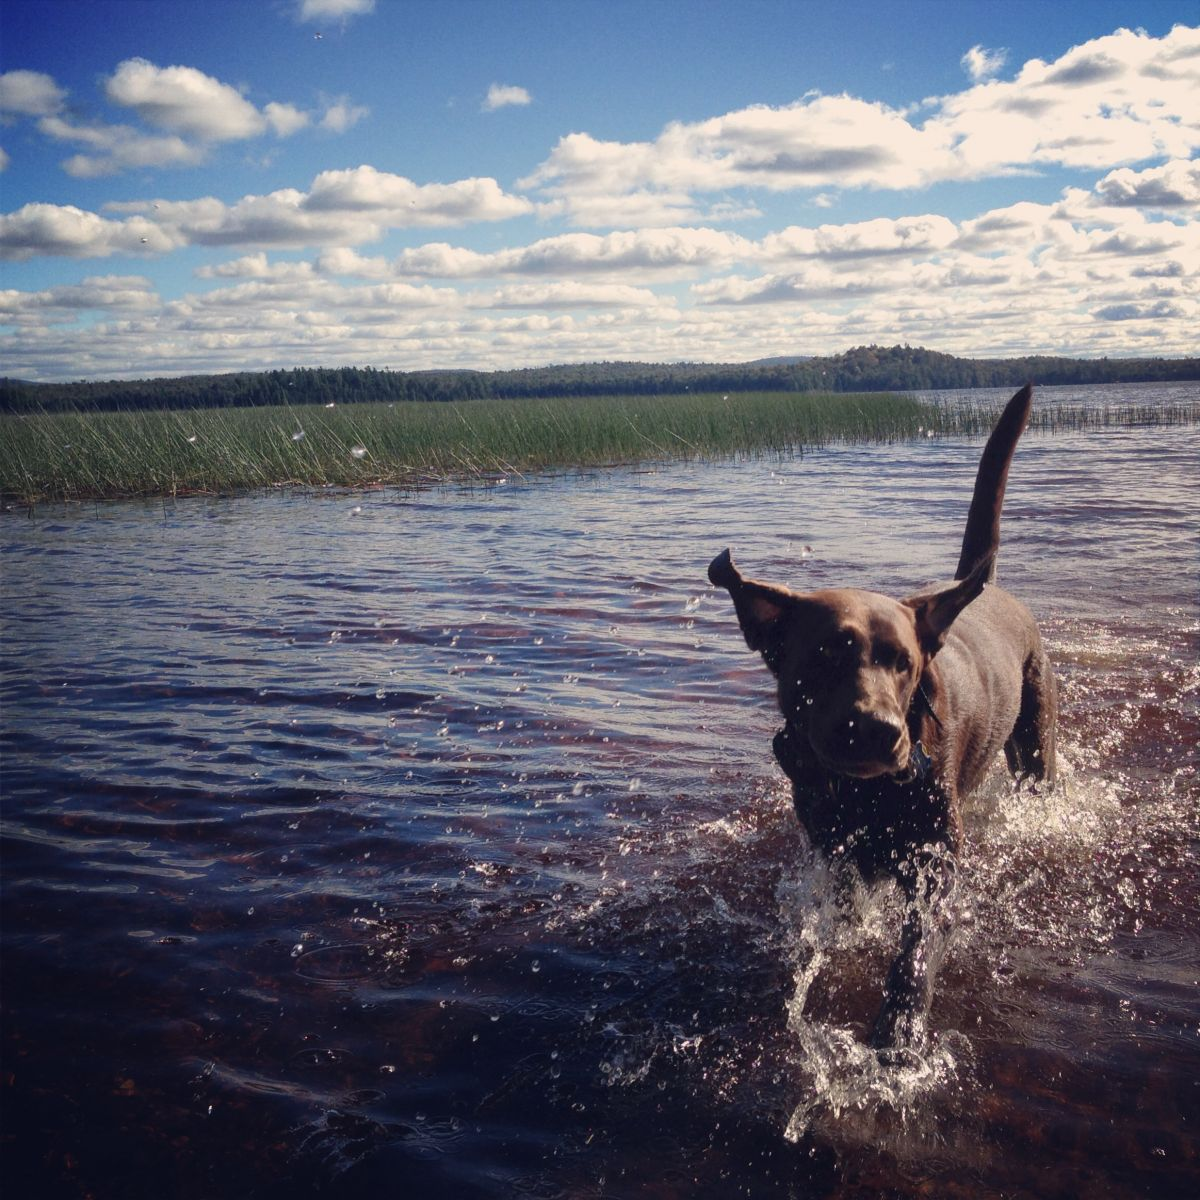 Gilly enjoying a summer day on Lake Lila